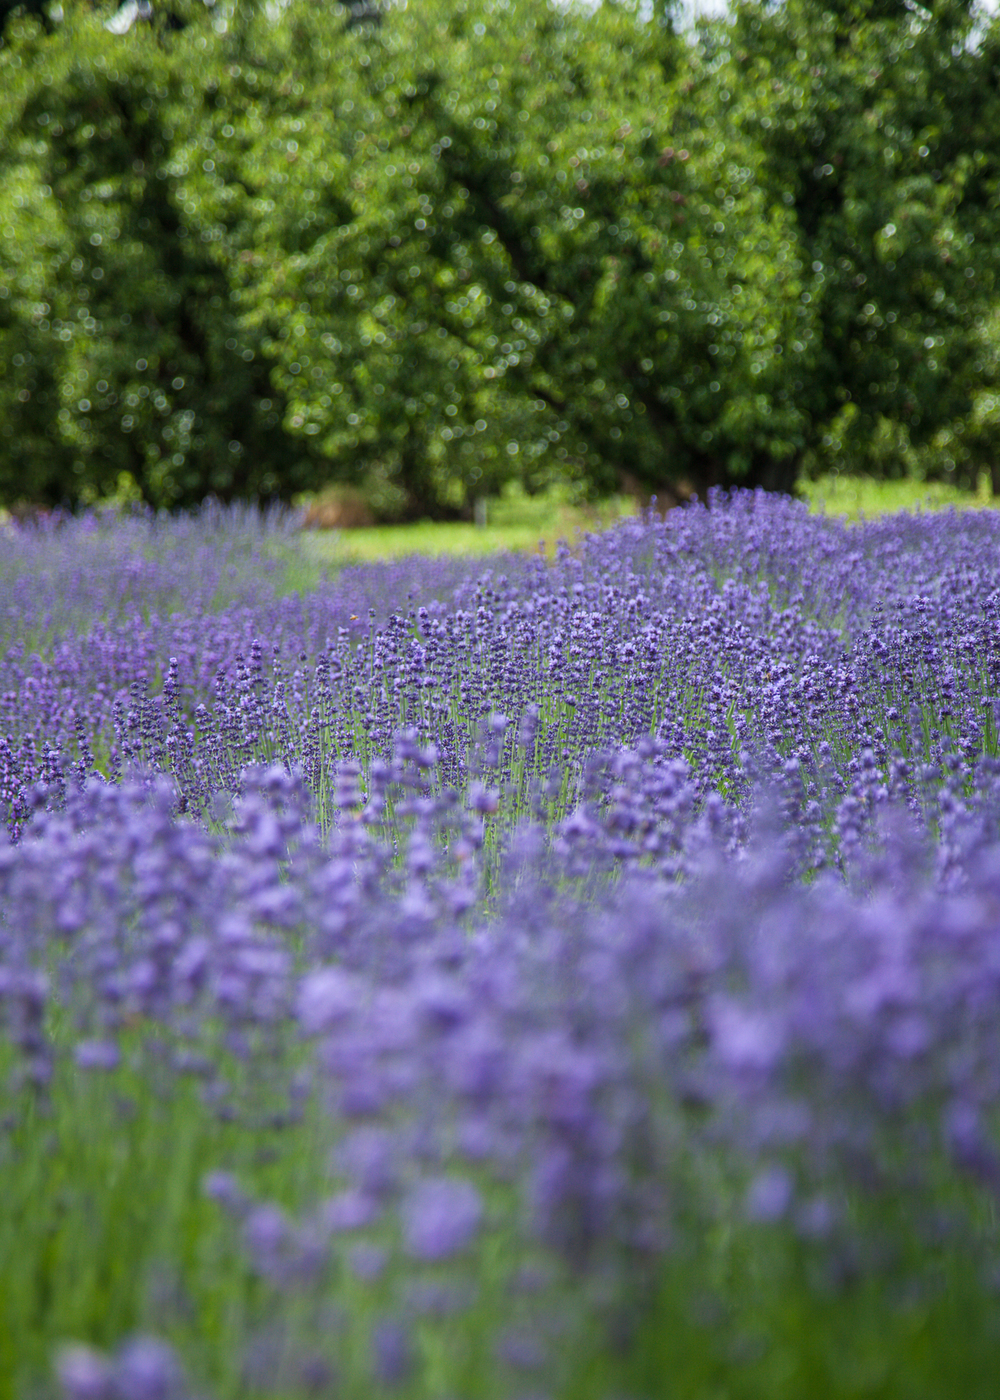 A field of lavender.